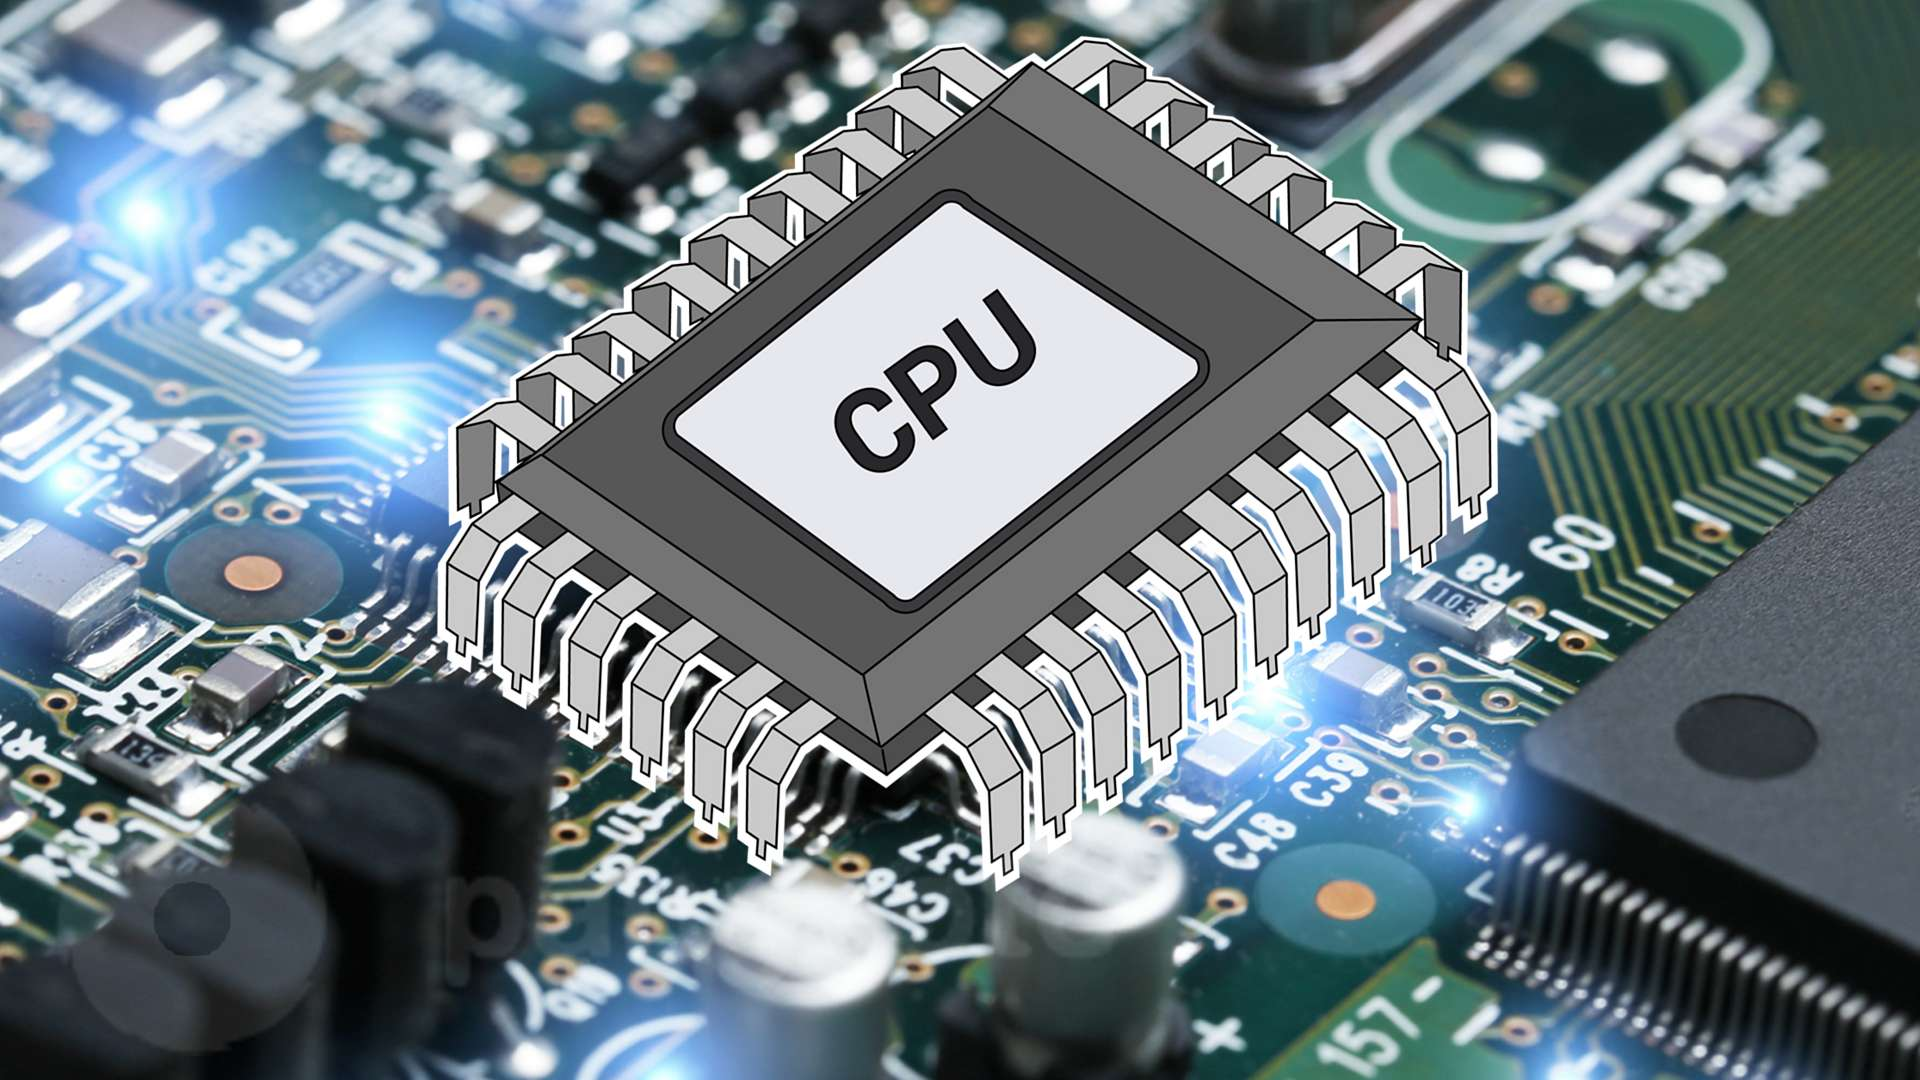 Why computer chips started to wear out faster?